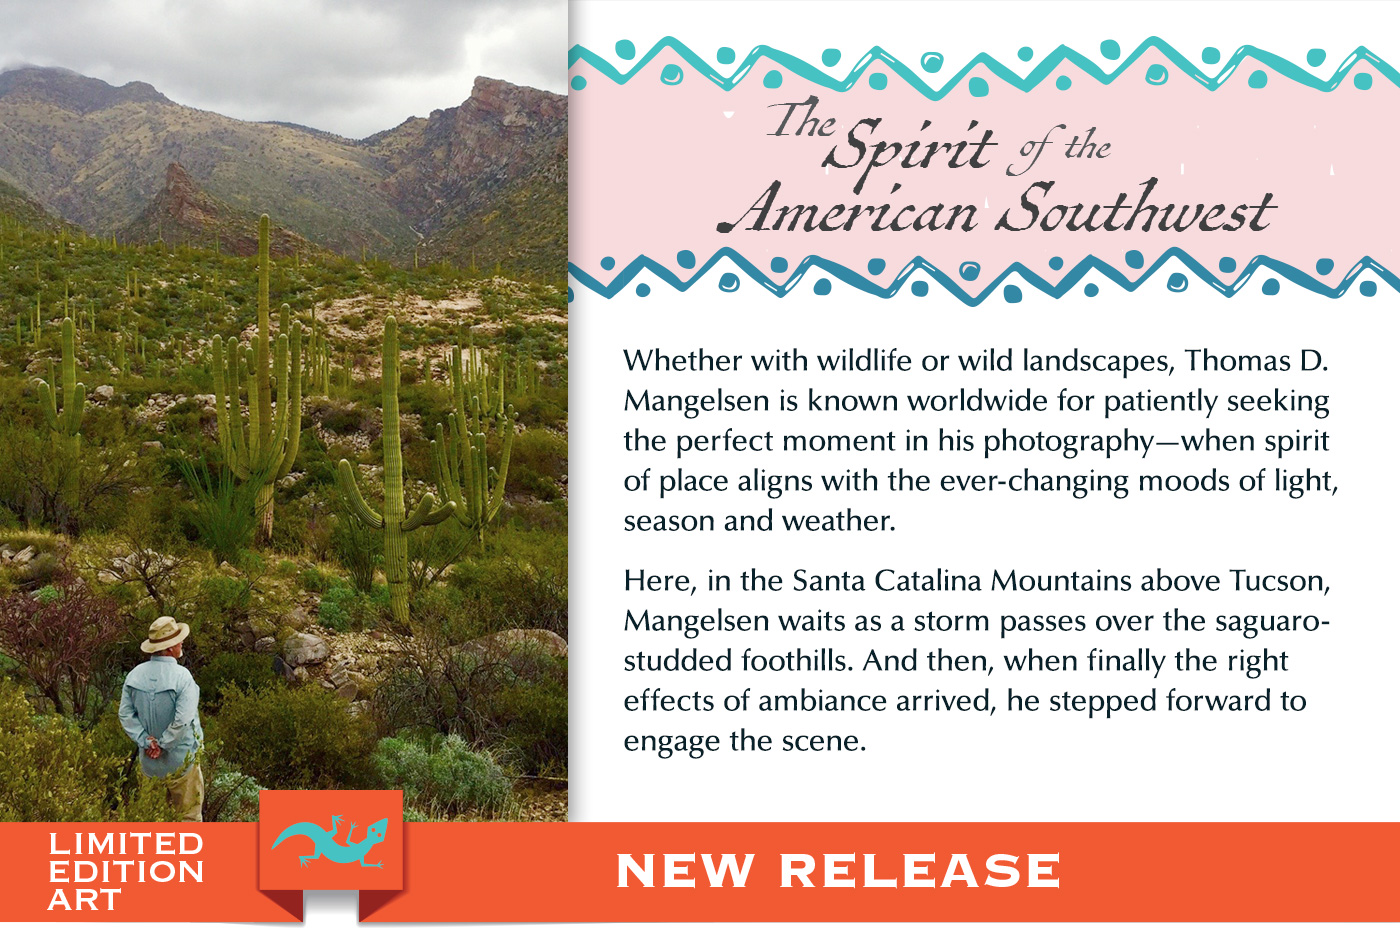 A new image capturing the Spirit of the American Southwest within the Sonoran Desert